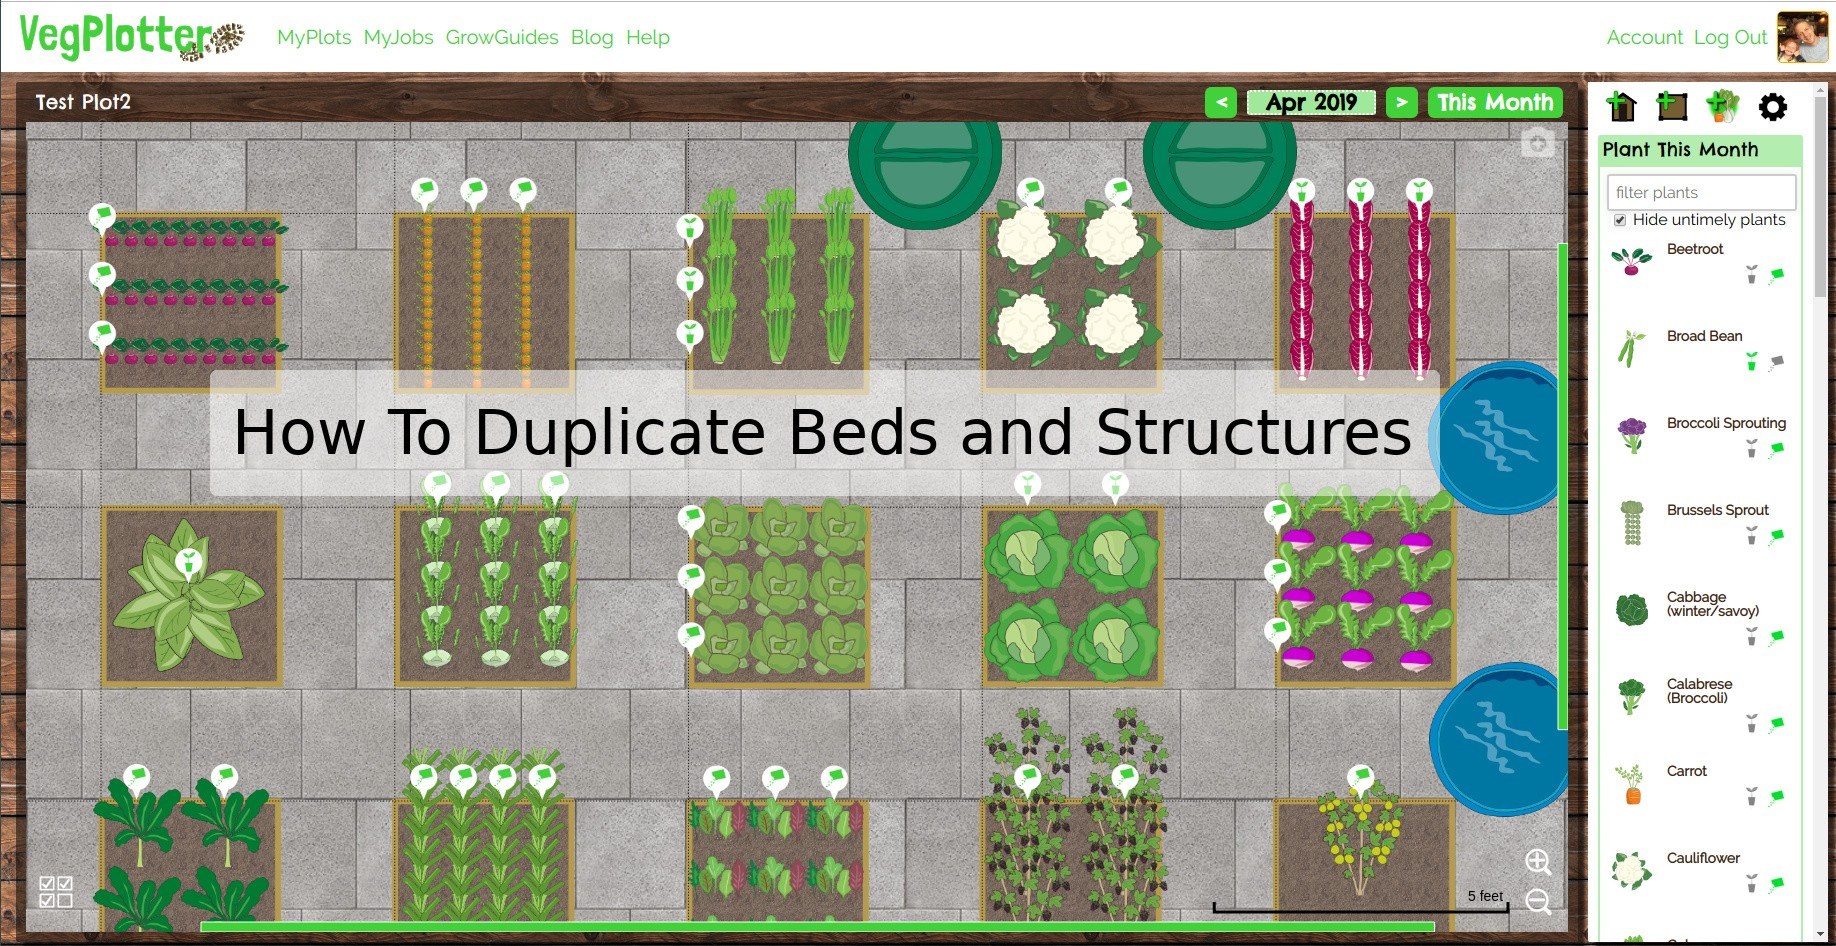 You can quickly design your vegetable garden using the duplicate feature of VegPlotter.